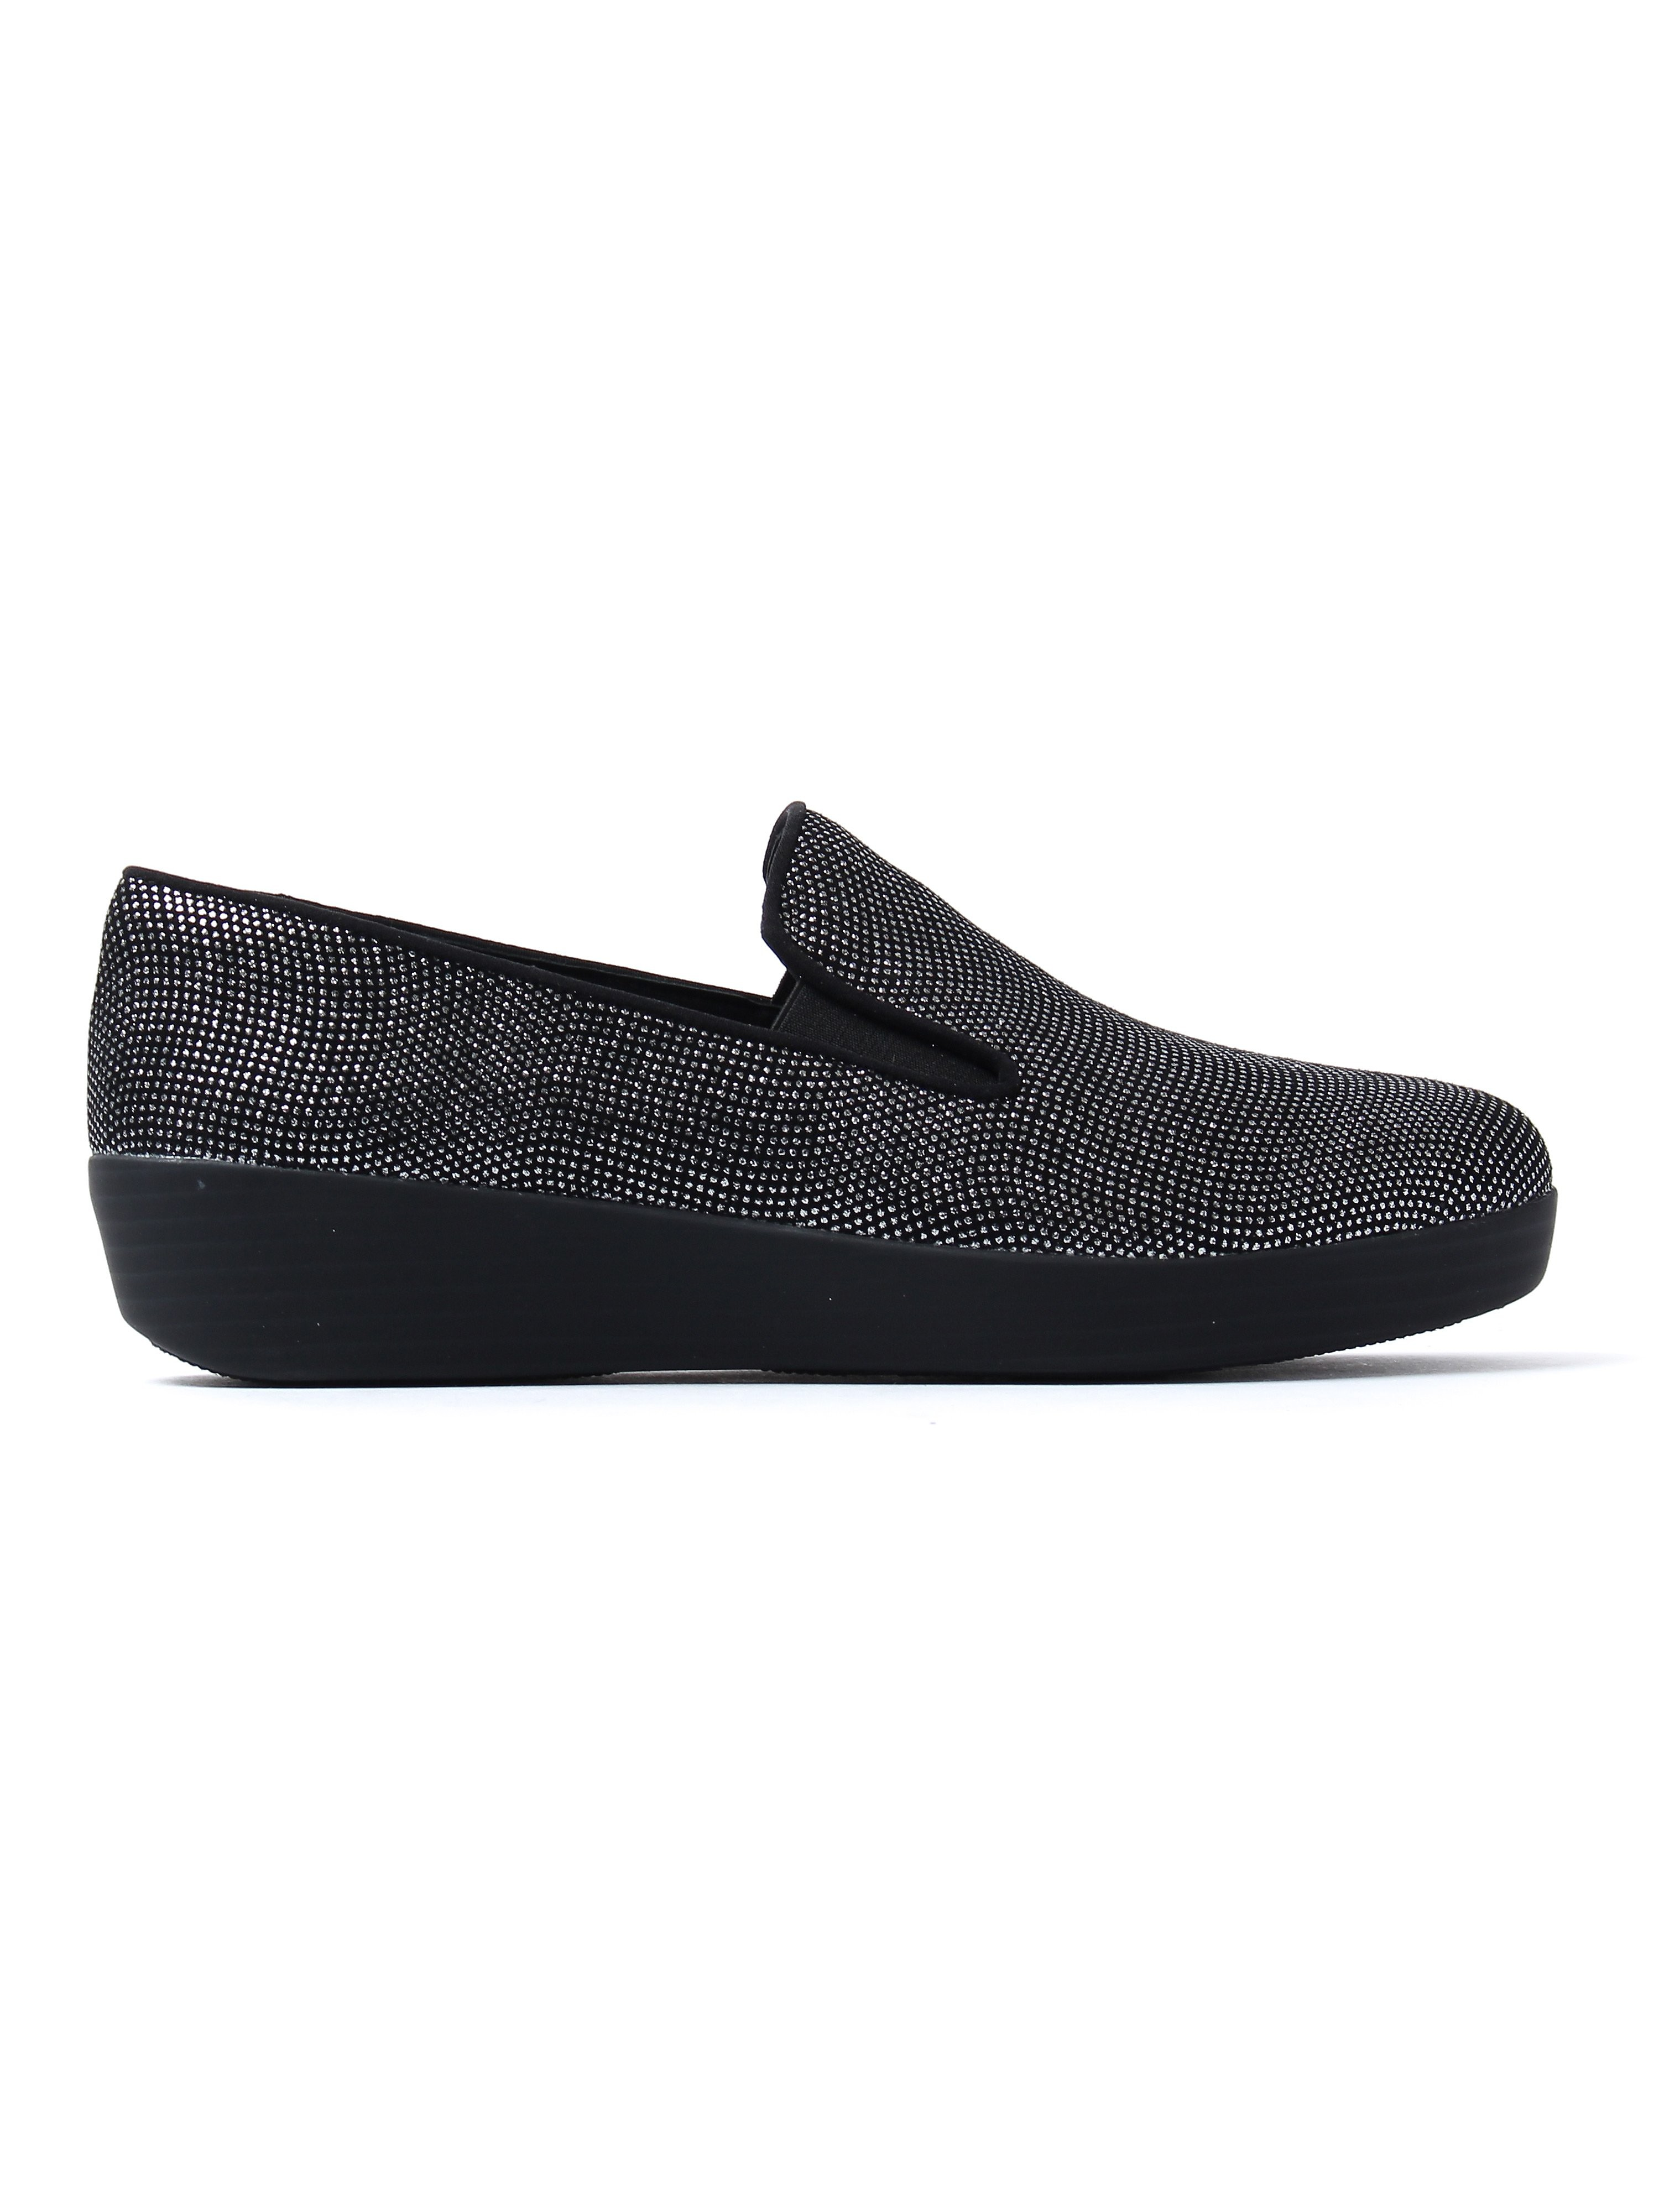 FitFlop Women's Superskate Glimmer Loafers - Black